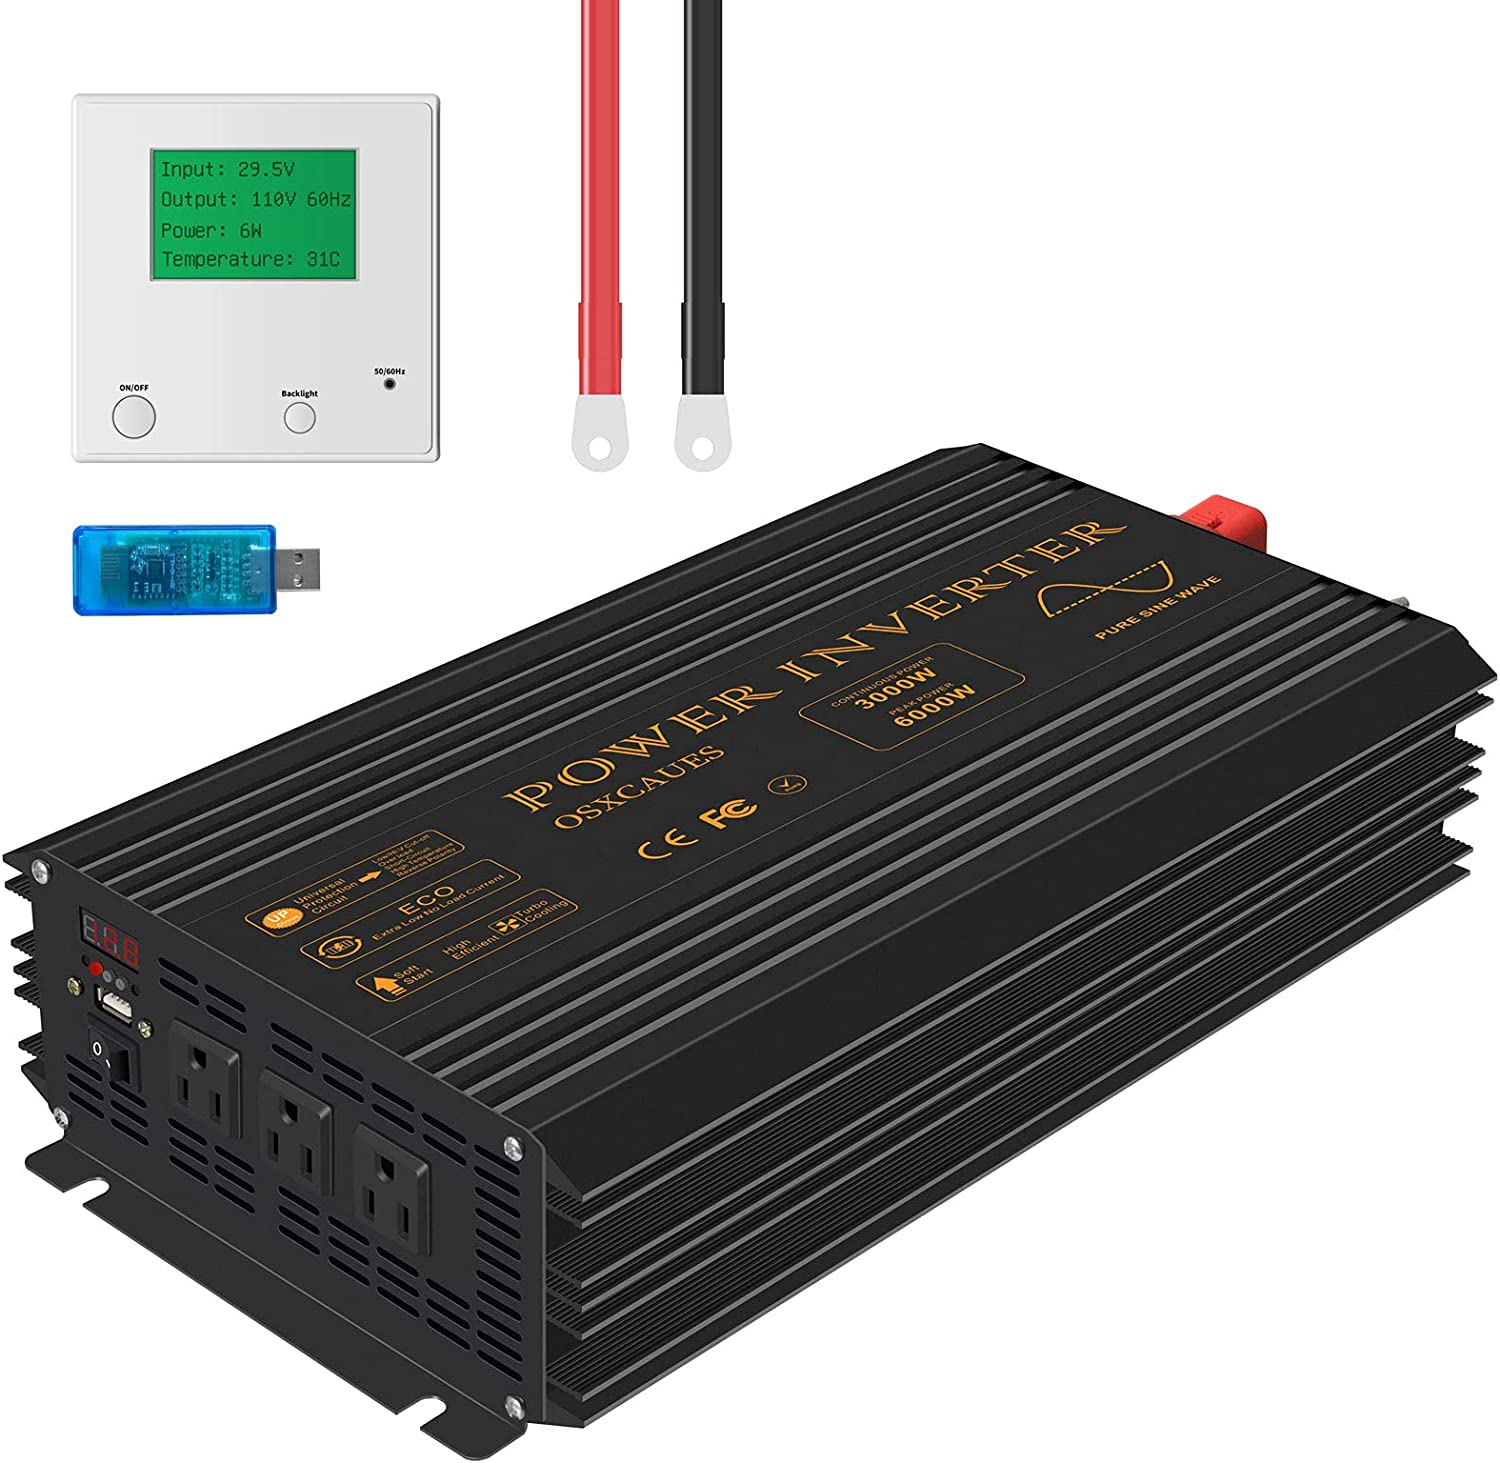 Osxcaues Pure Sine Wave 3000W Max 63% OFF Power Inverter AC 24V Japan's largest assortment 110V to R DC